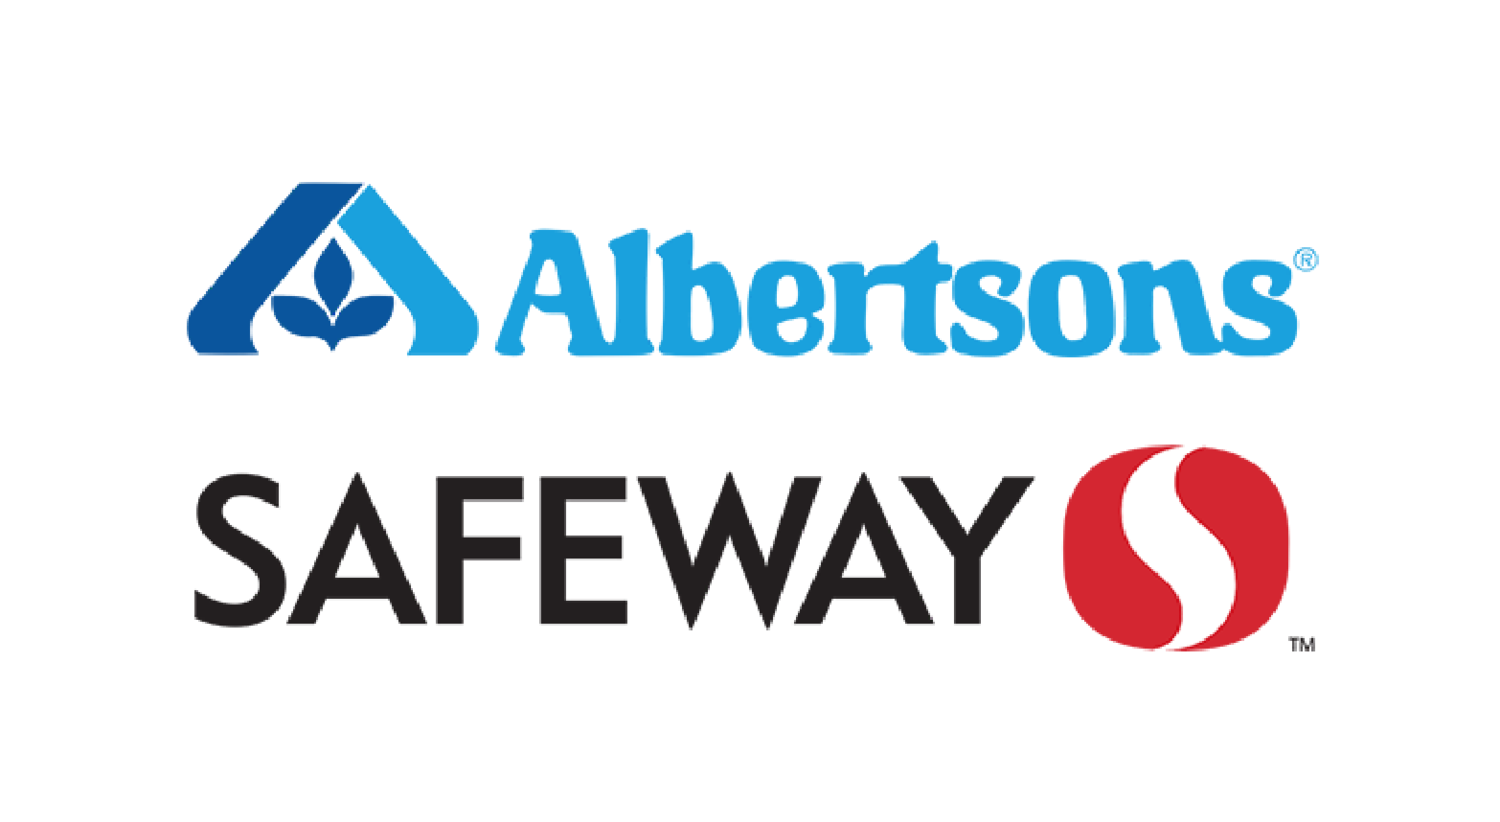 Albertsons Safeway Partnership Expands